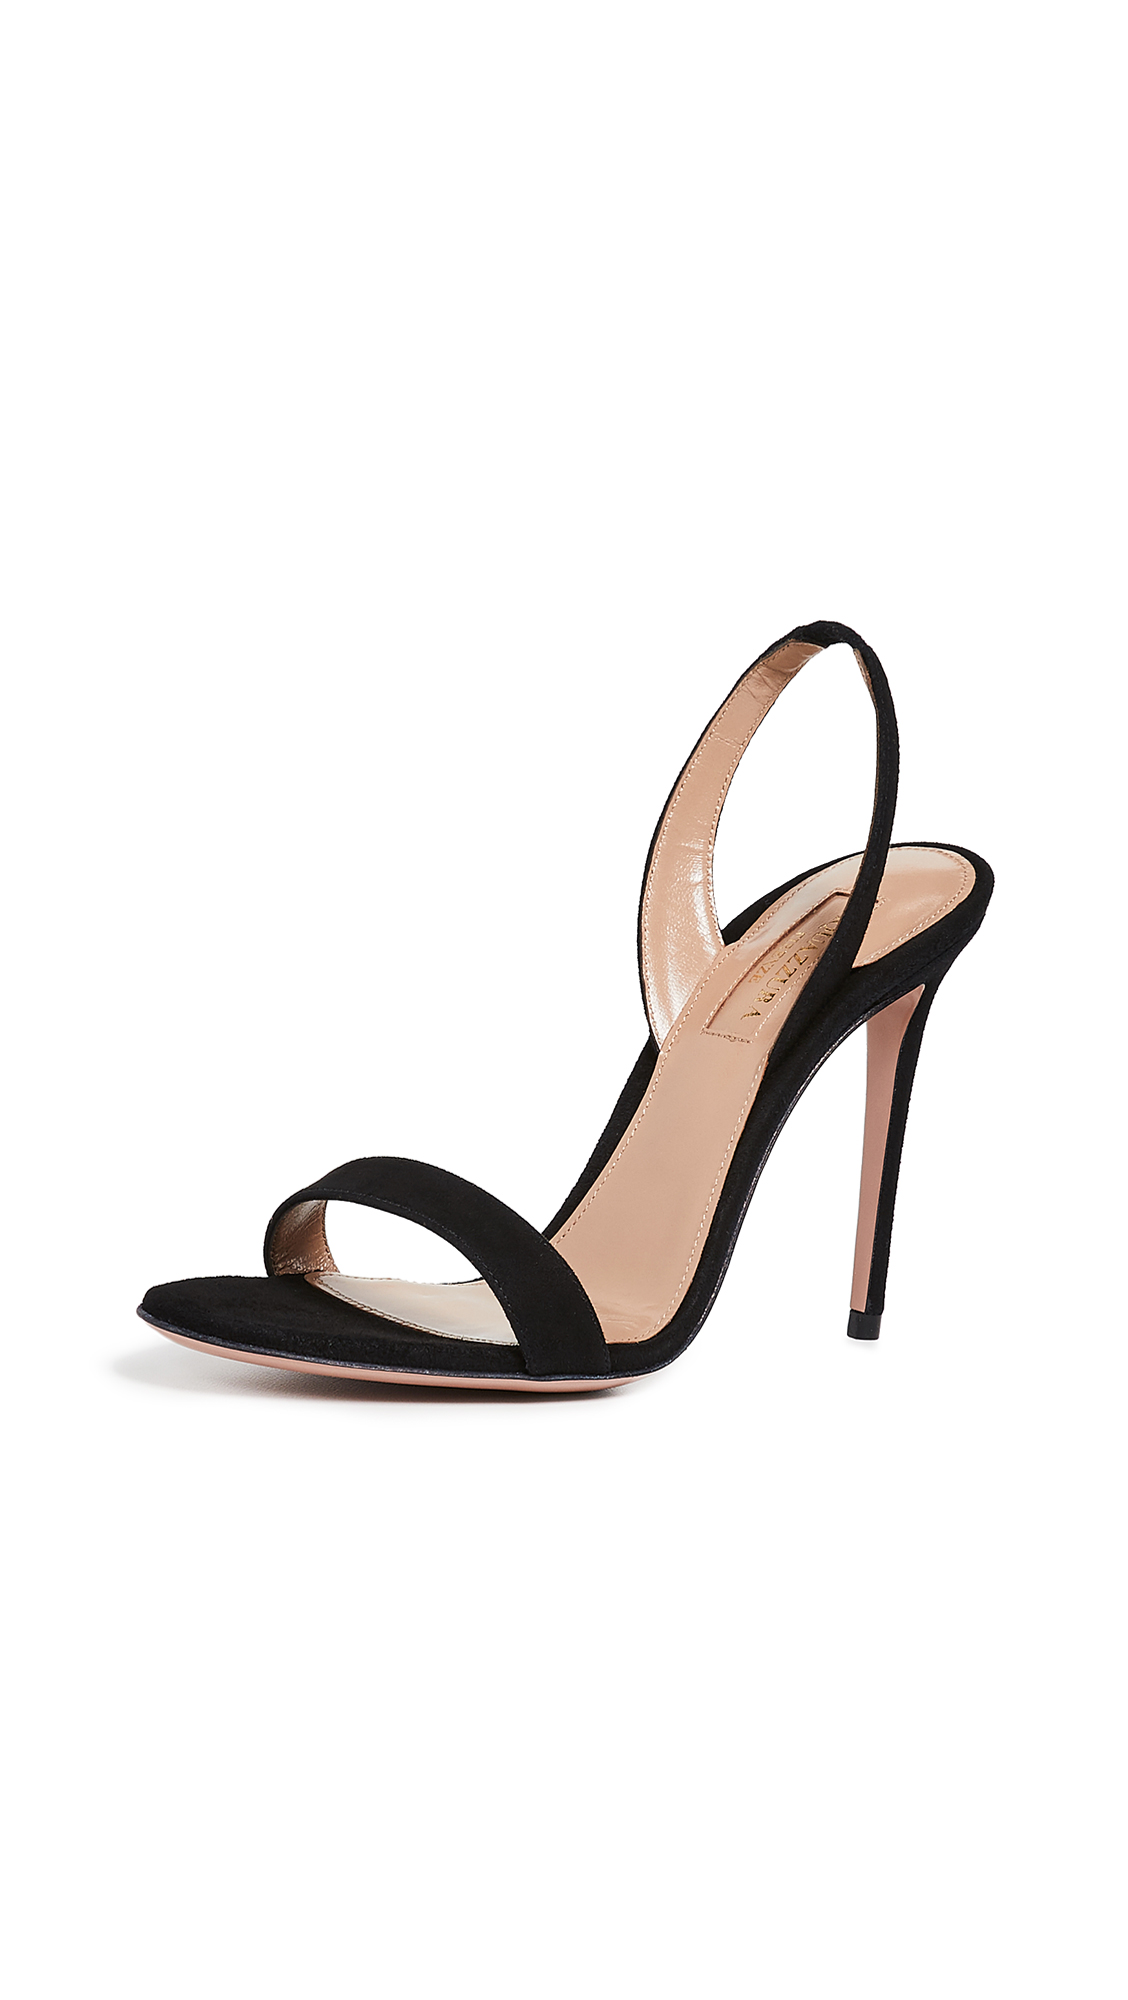 Buy Aquazzura 105mm So Nude Sandals online, shop Aquazzura